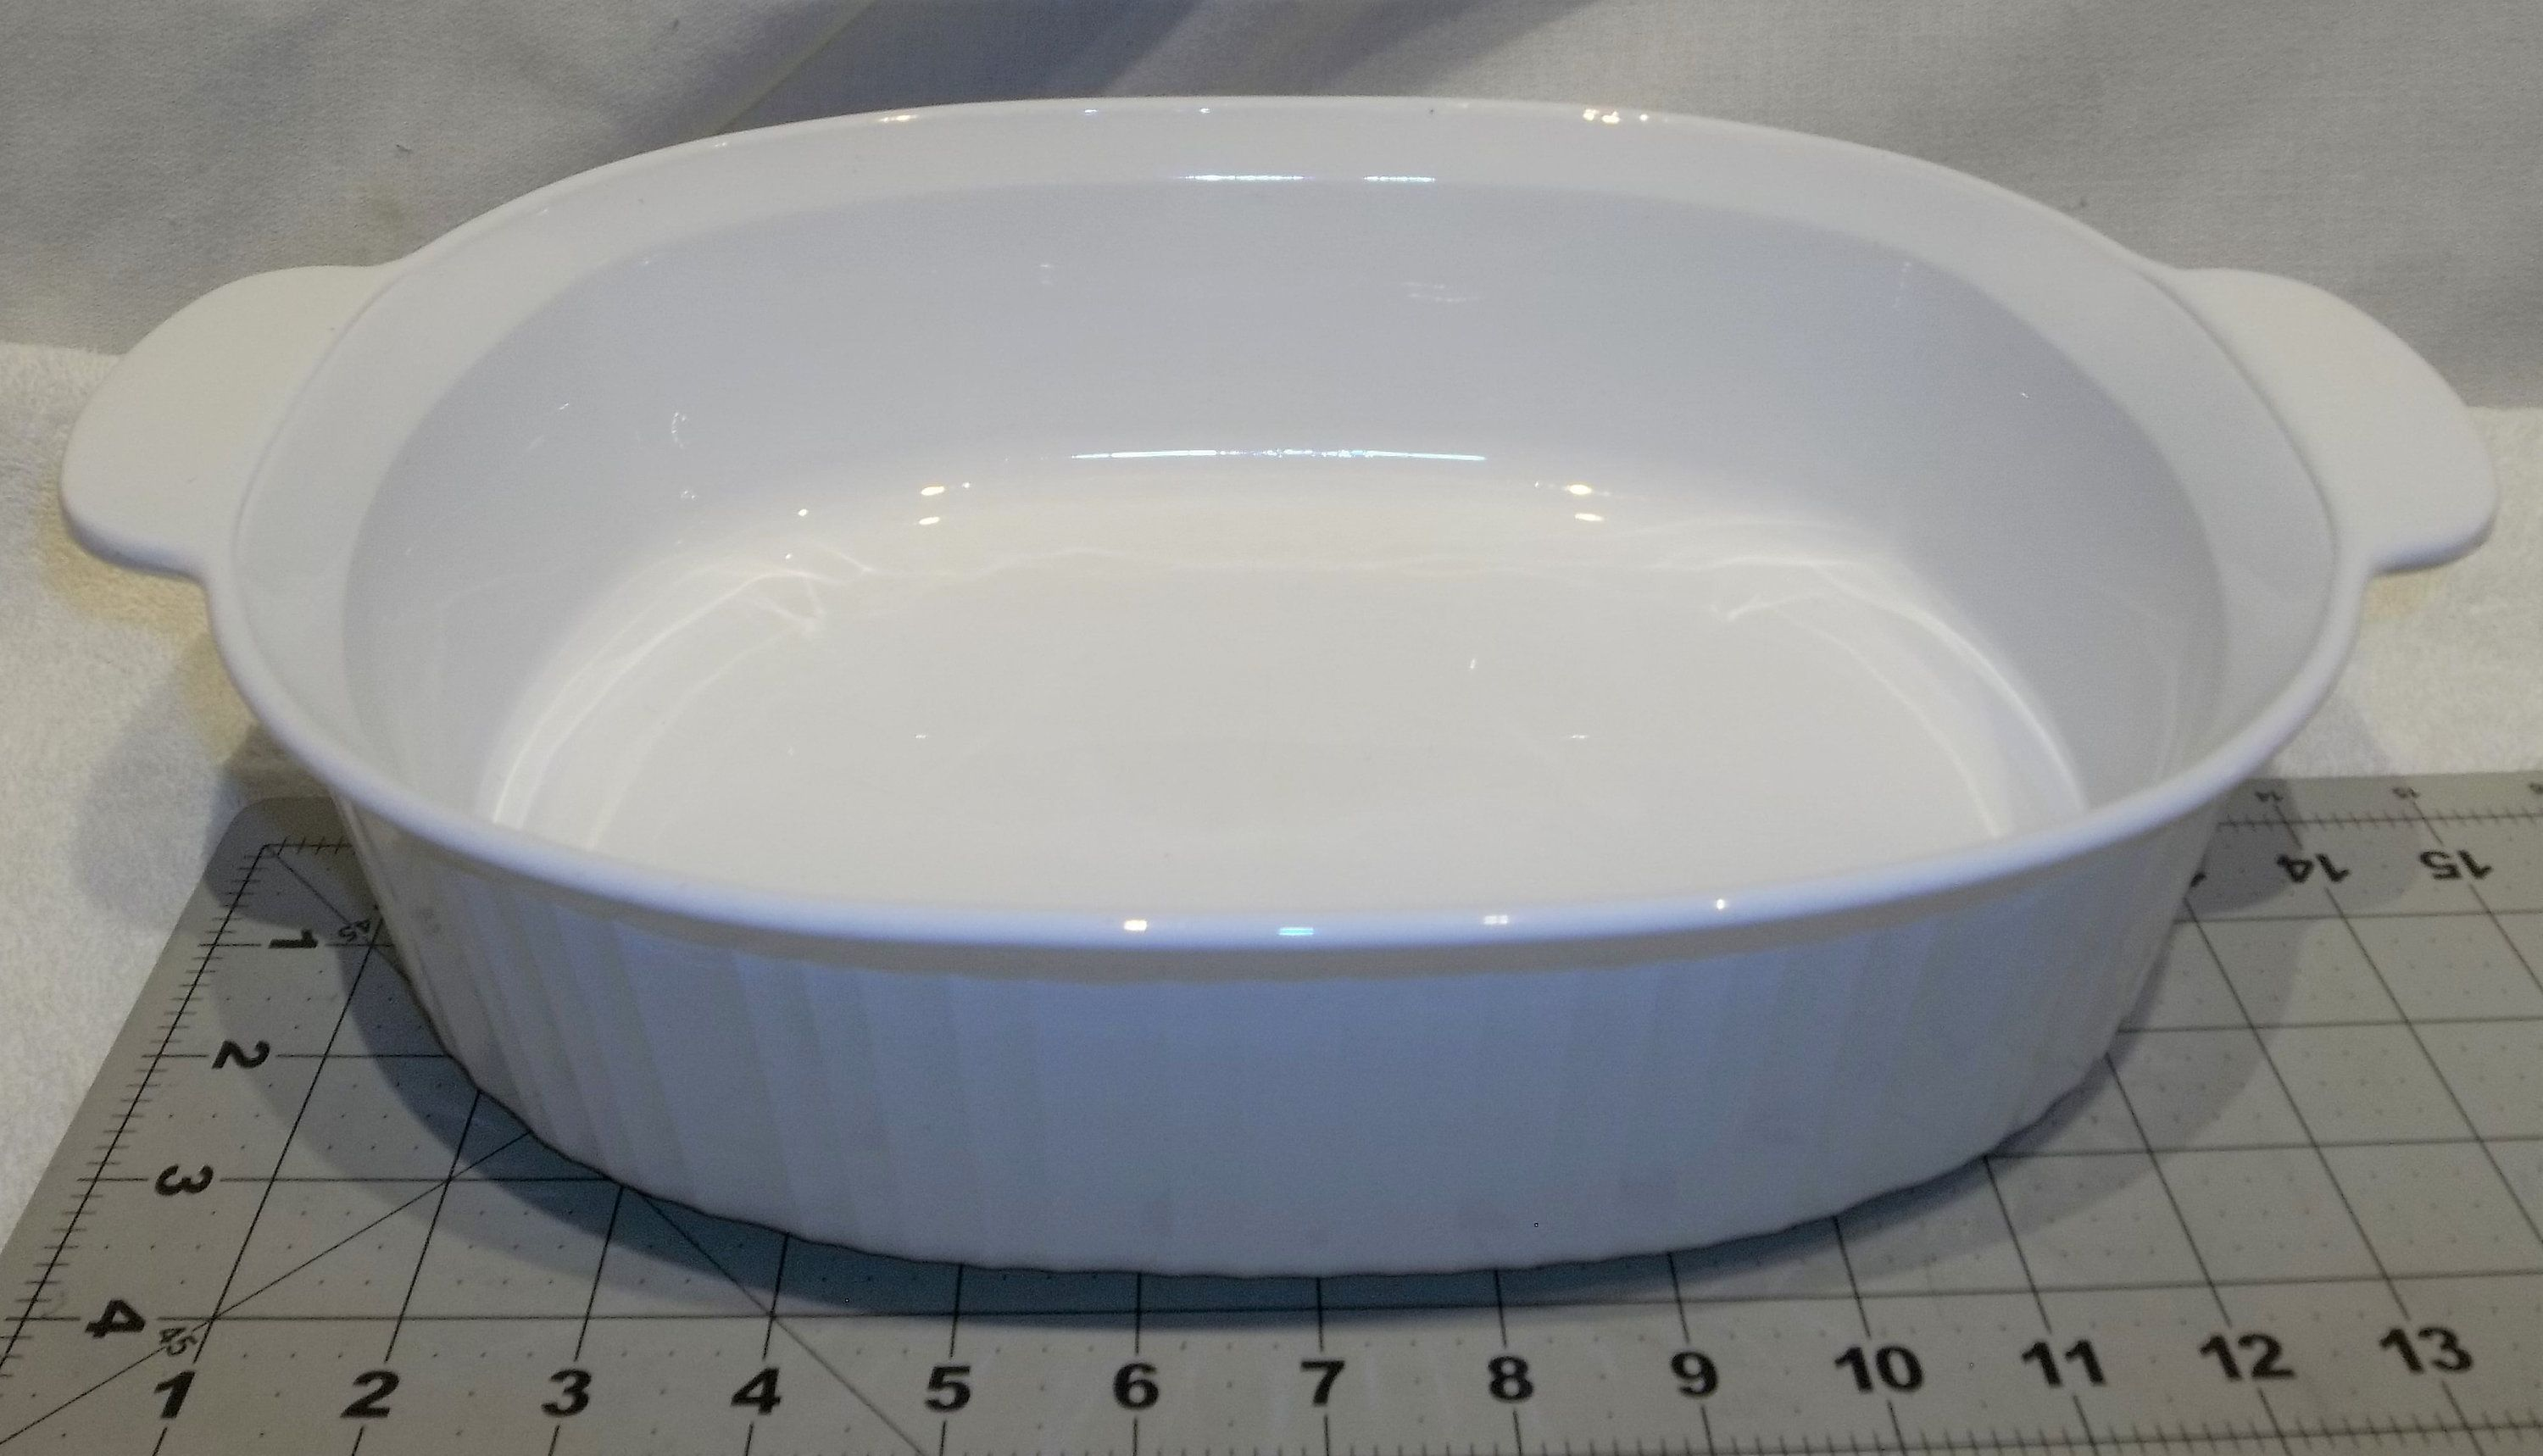 Vintage Corning Ware French White Roaster Pan Baking Dish Large Deep Dish 4 Liter F 14 B Casserole Heavy Duty Bake In 2020 Kitchen Cooker Baked Dishes Glass Cake Plate